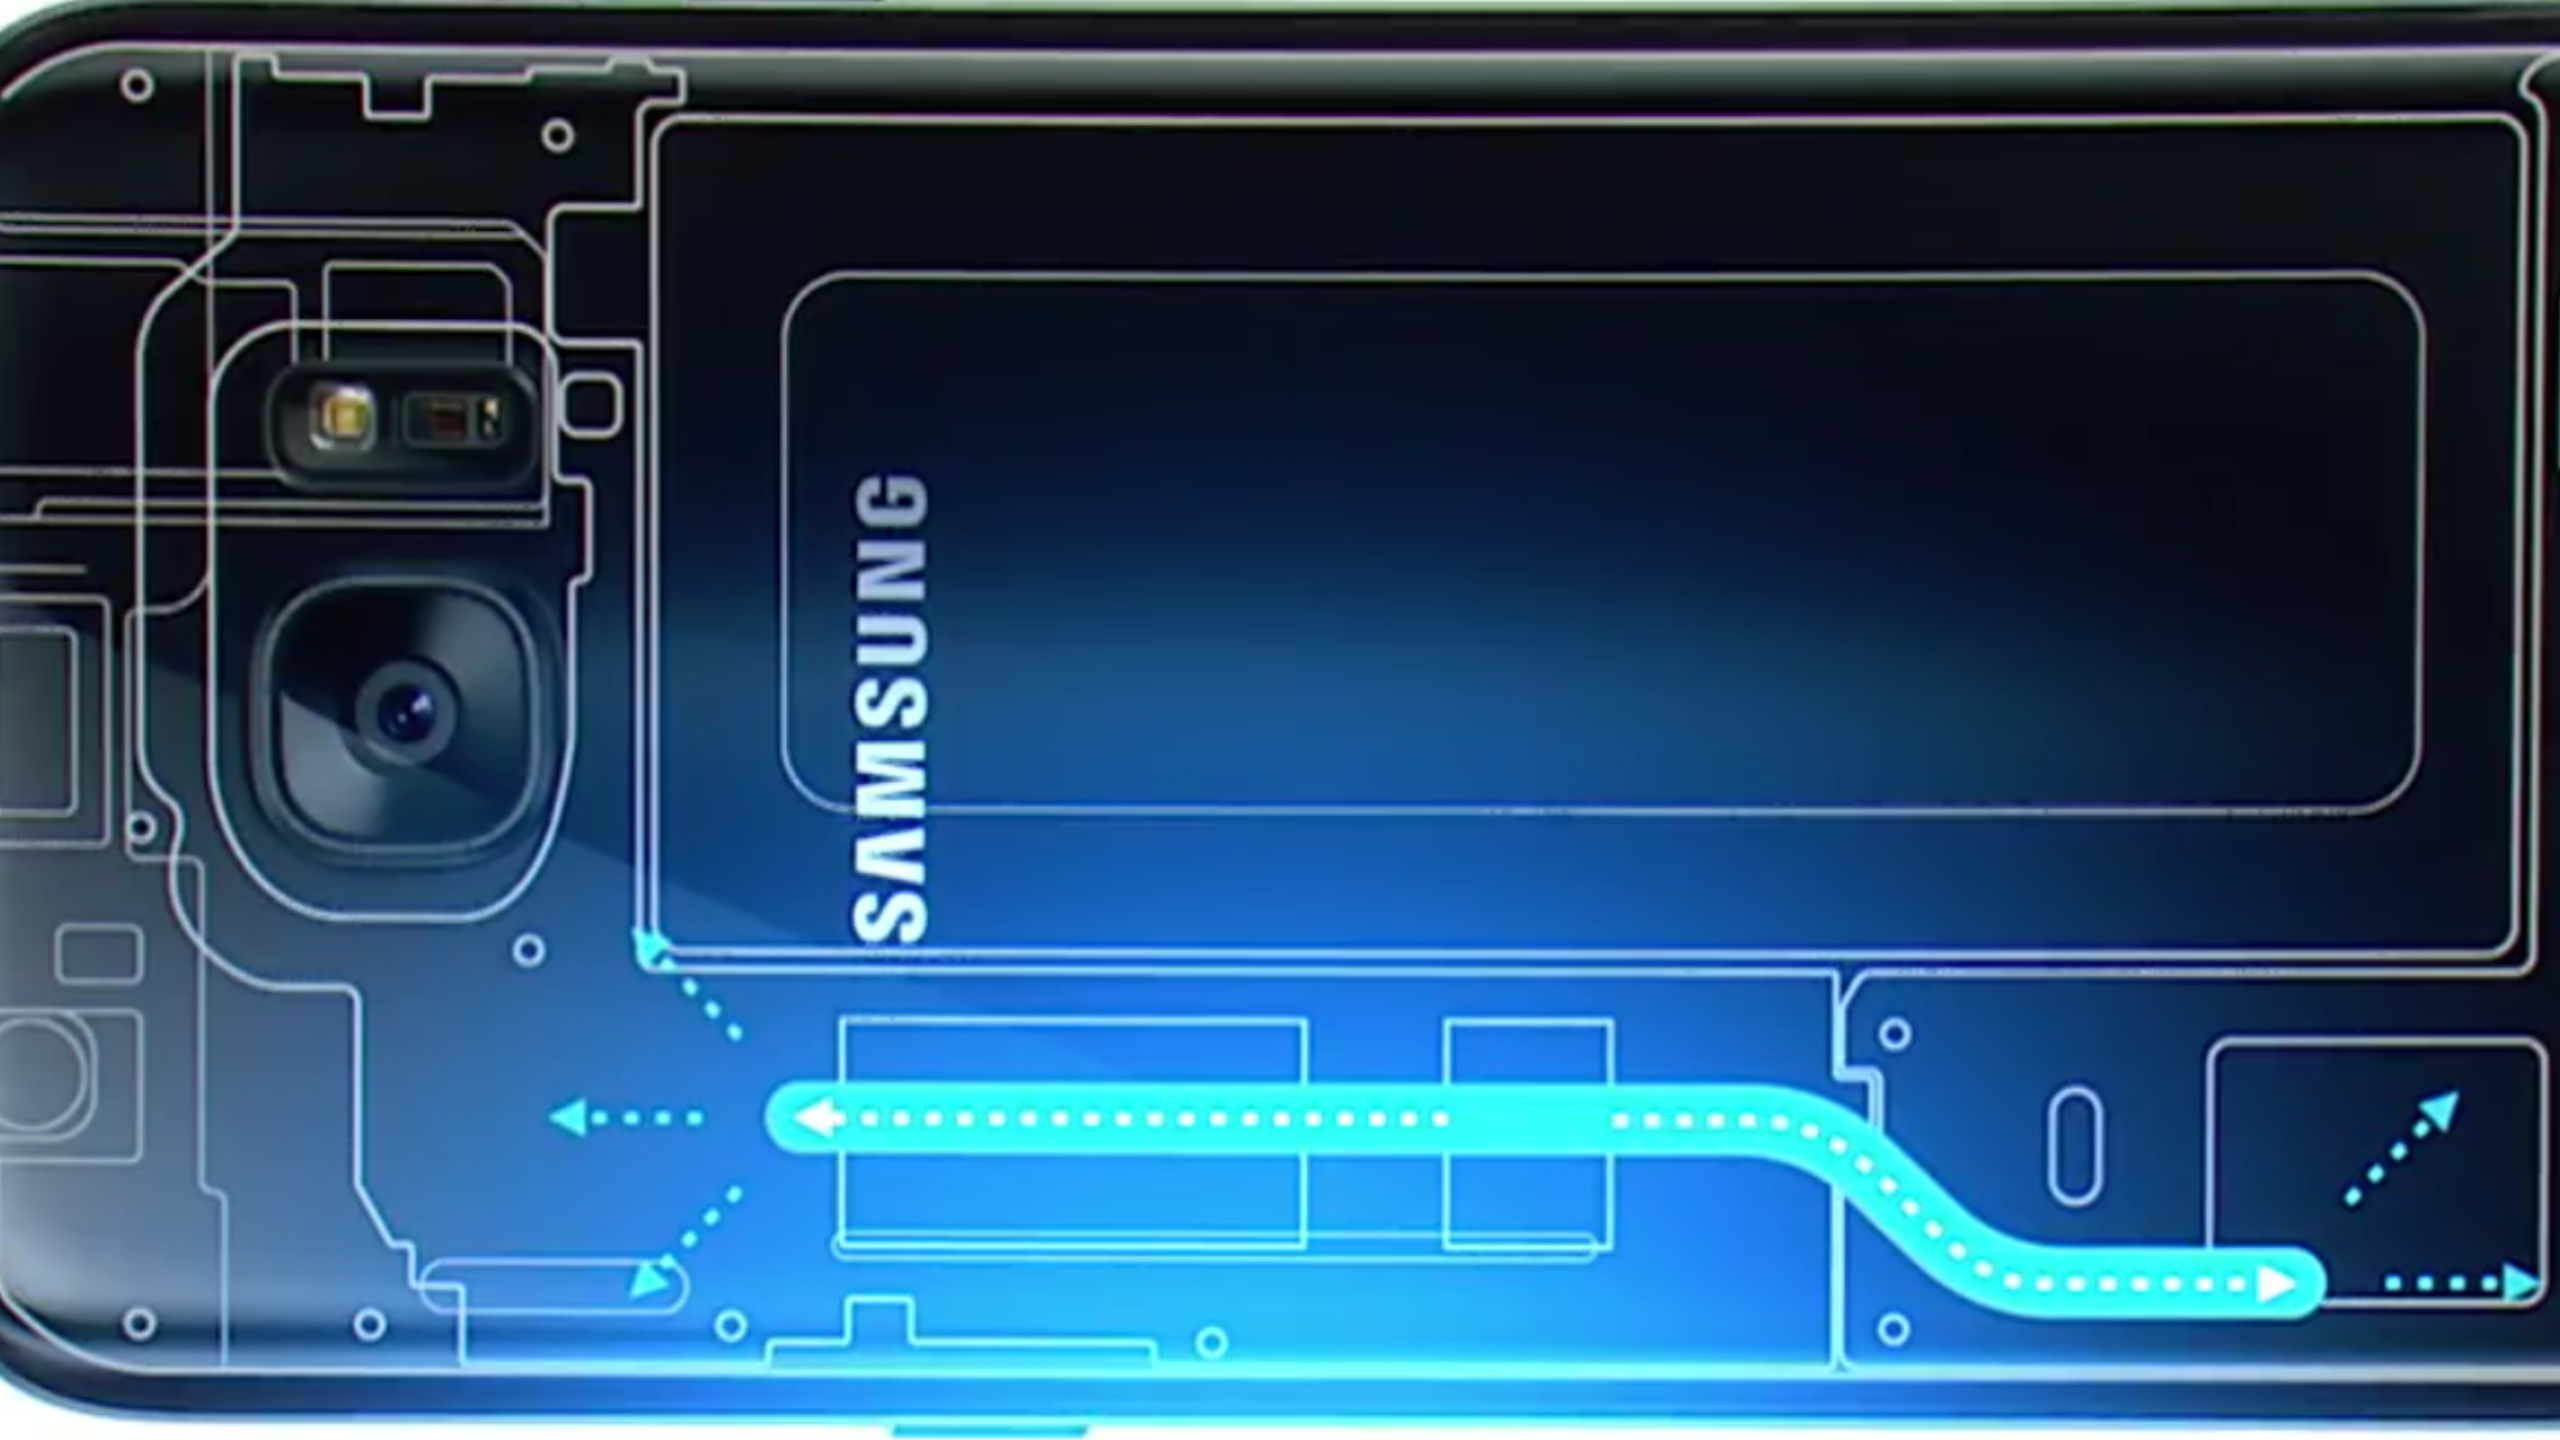 Samsung Galaxy S6 Edge Hd Wallpaper 56: Don't Underestimate The Changes In The Galaxy S7 And S7